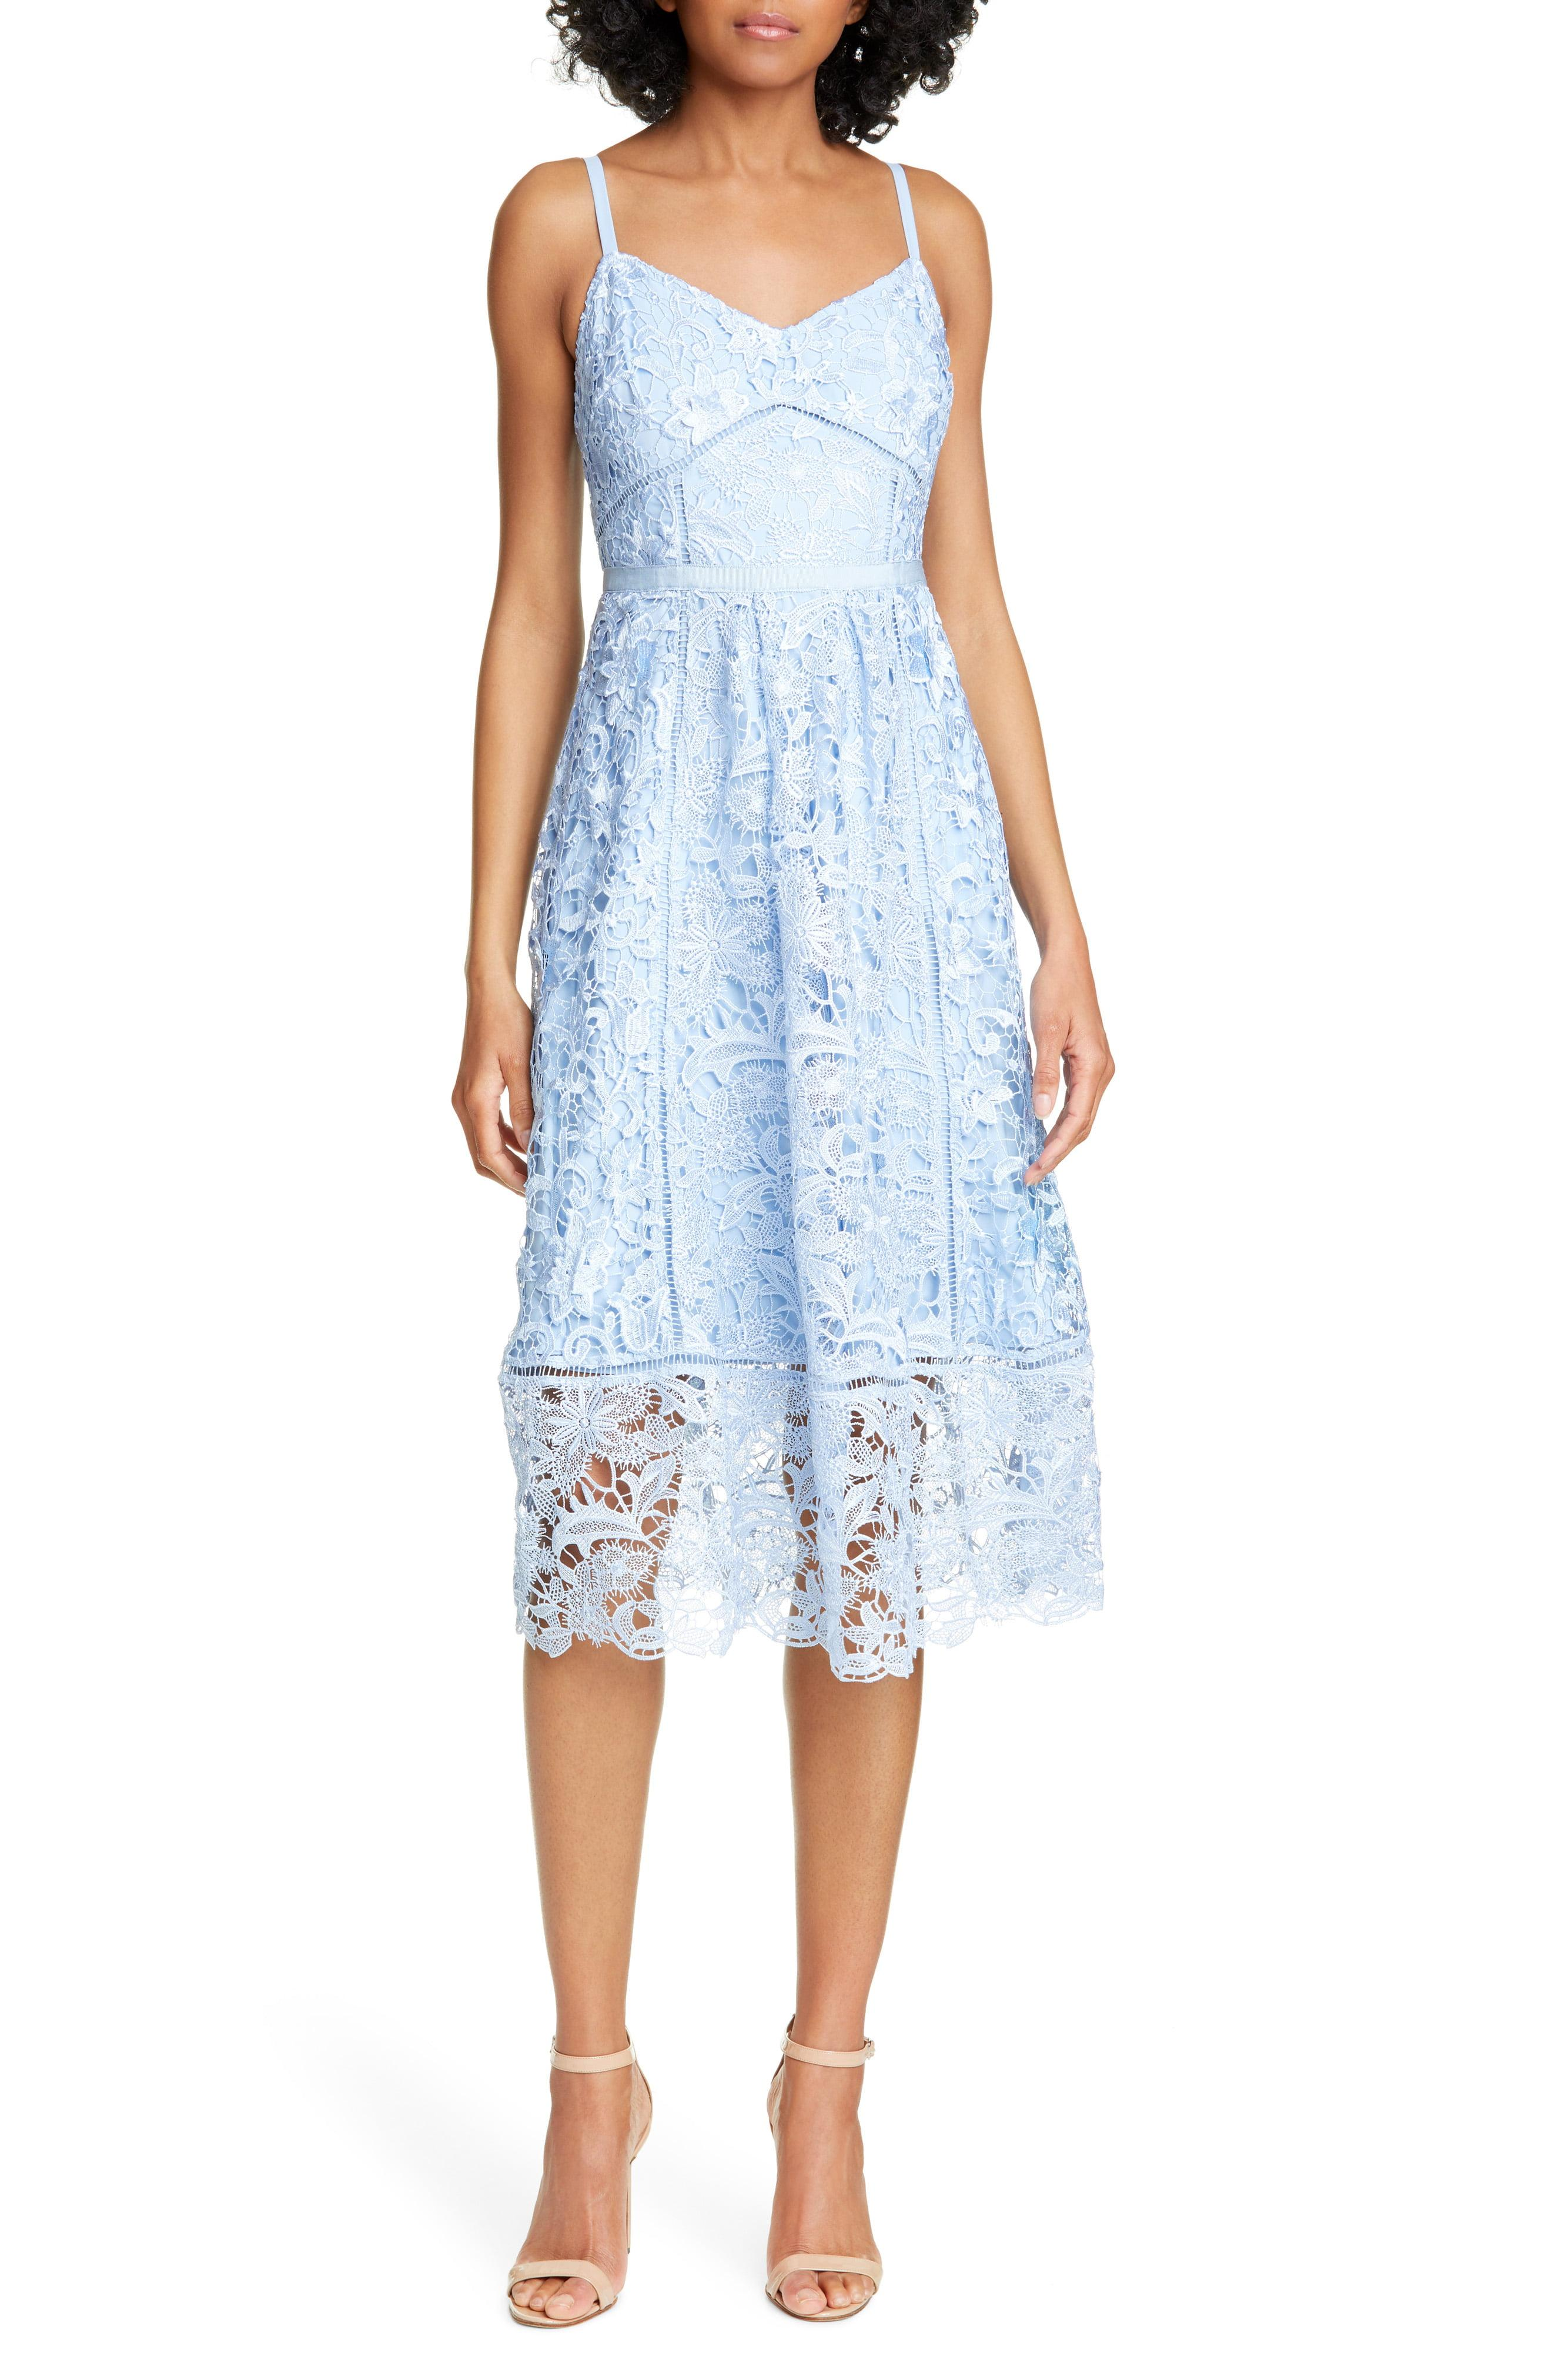 b18674513 Lyst - Ted Baker Valens Lace Midi Dress in White